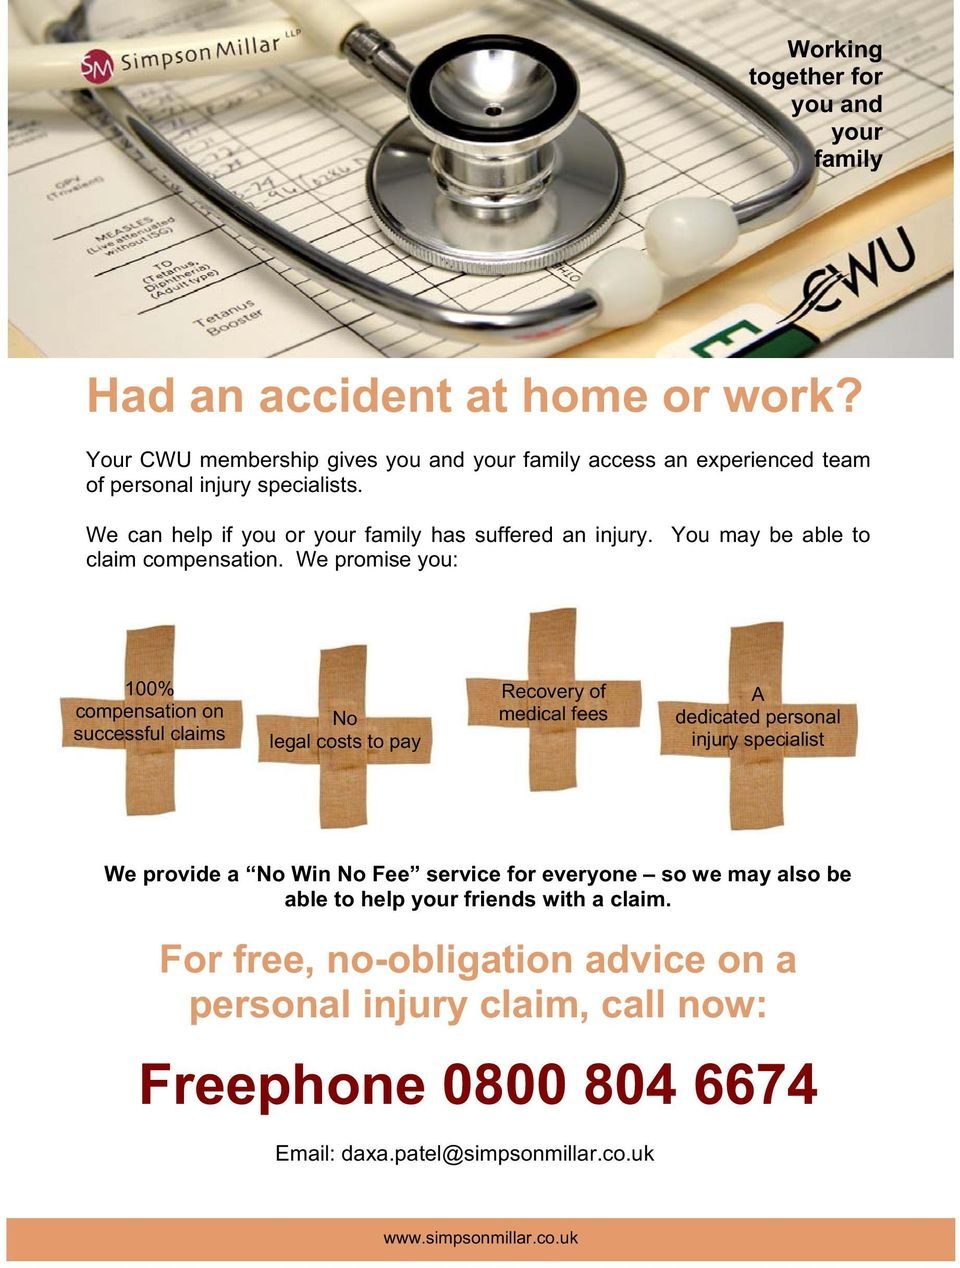 We can help if you or your family has suffered an injury. You may be able to claim compensation.